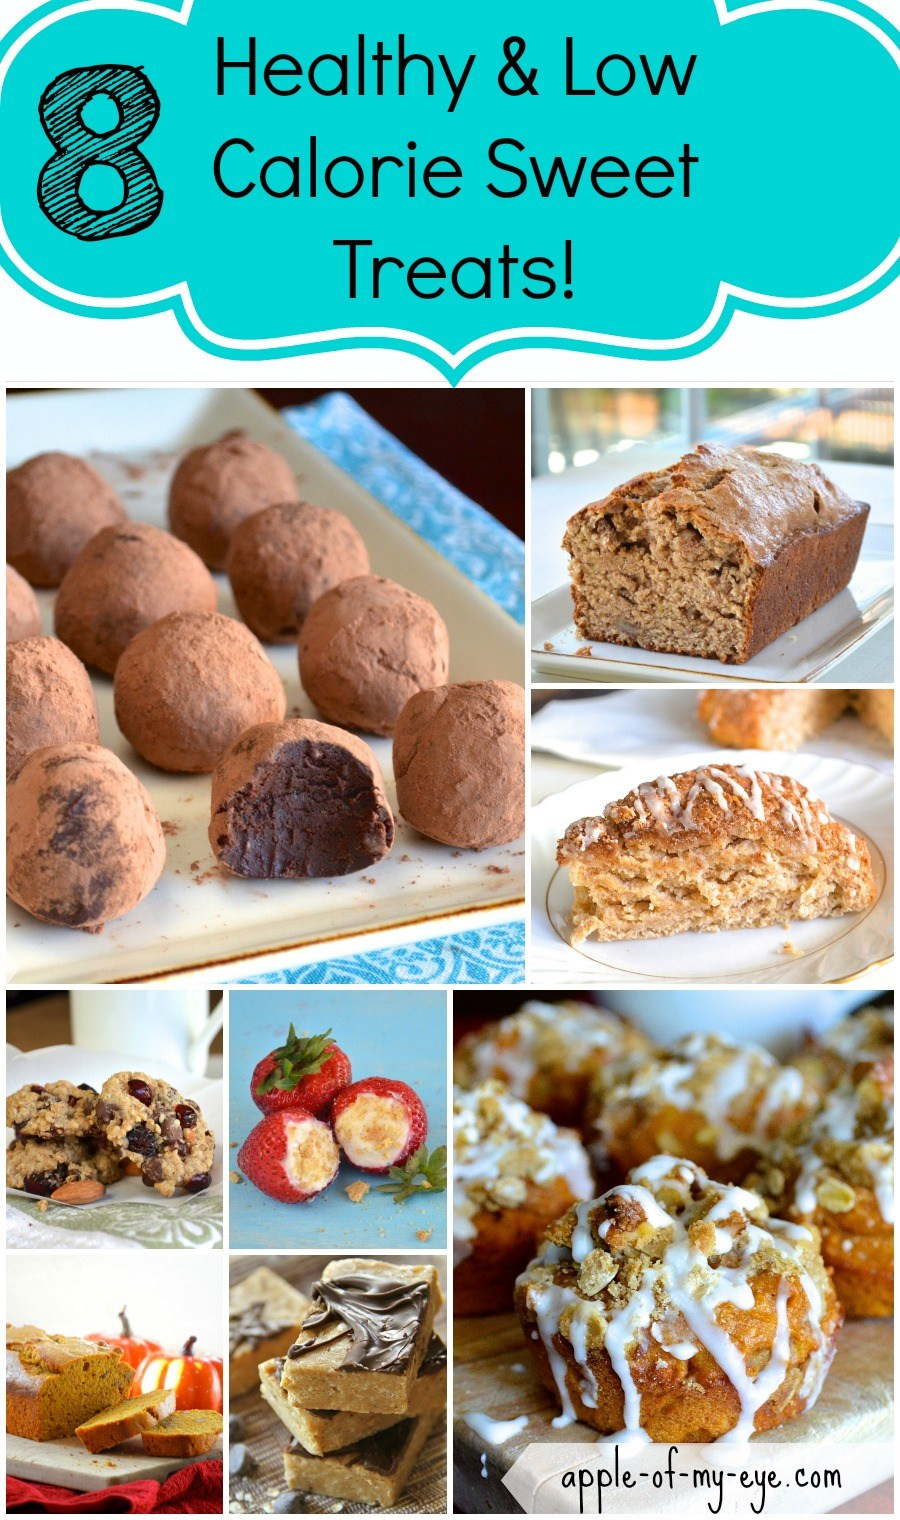 Healthy Low Calorie Desserts  Healthy and Low Calorie Desserts